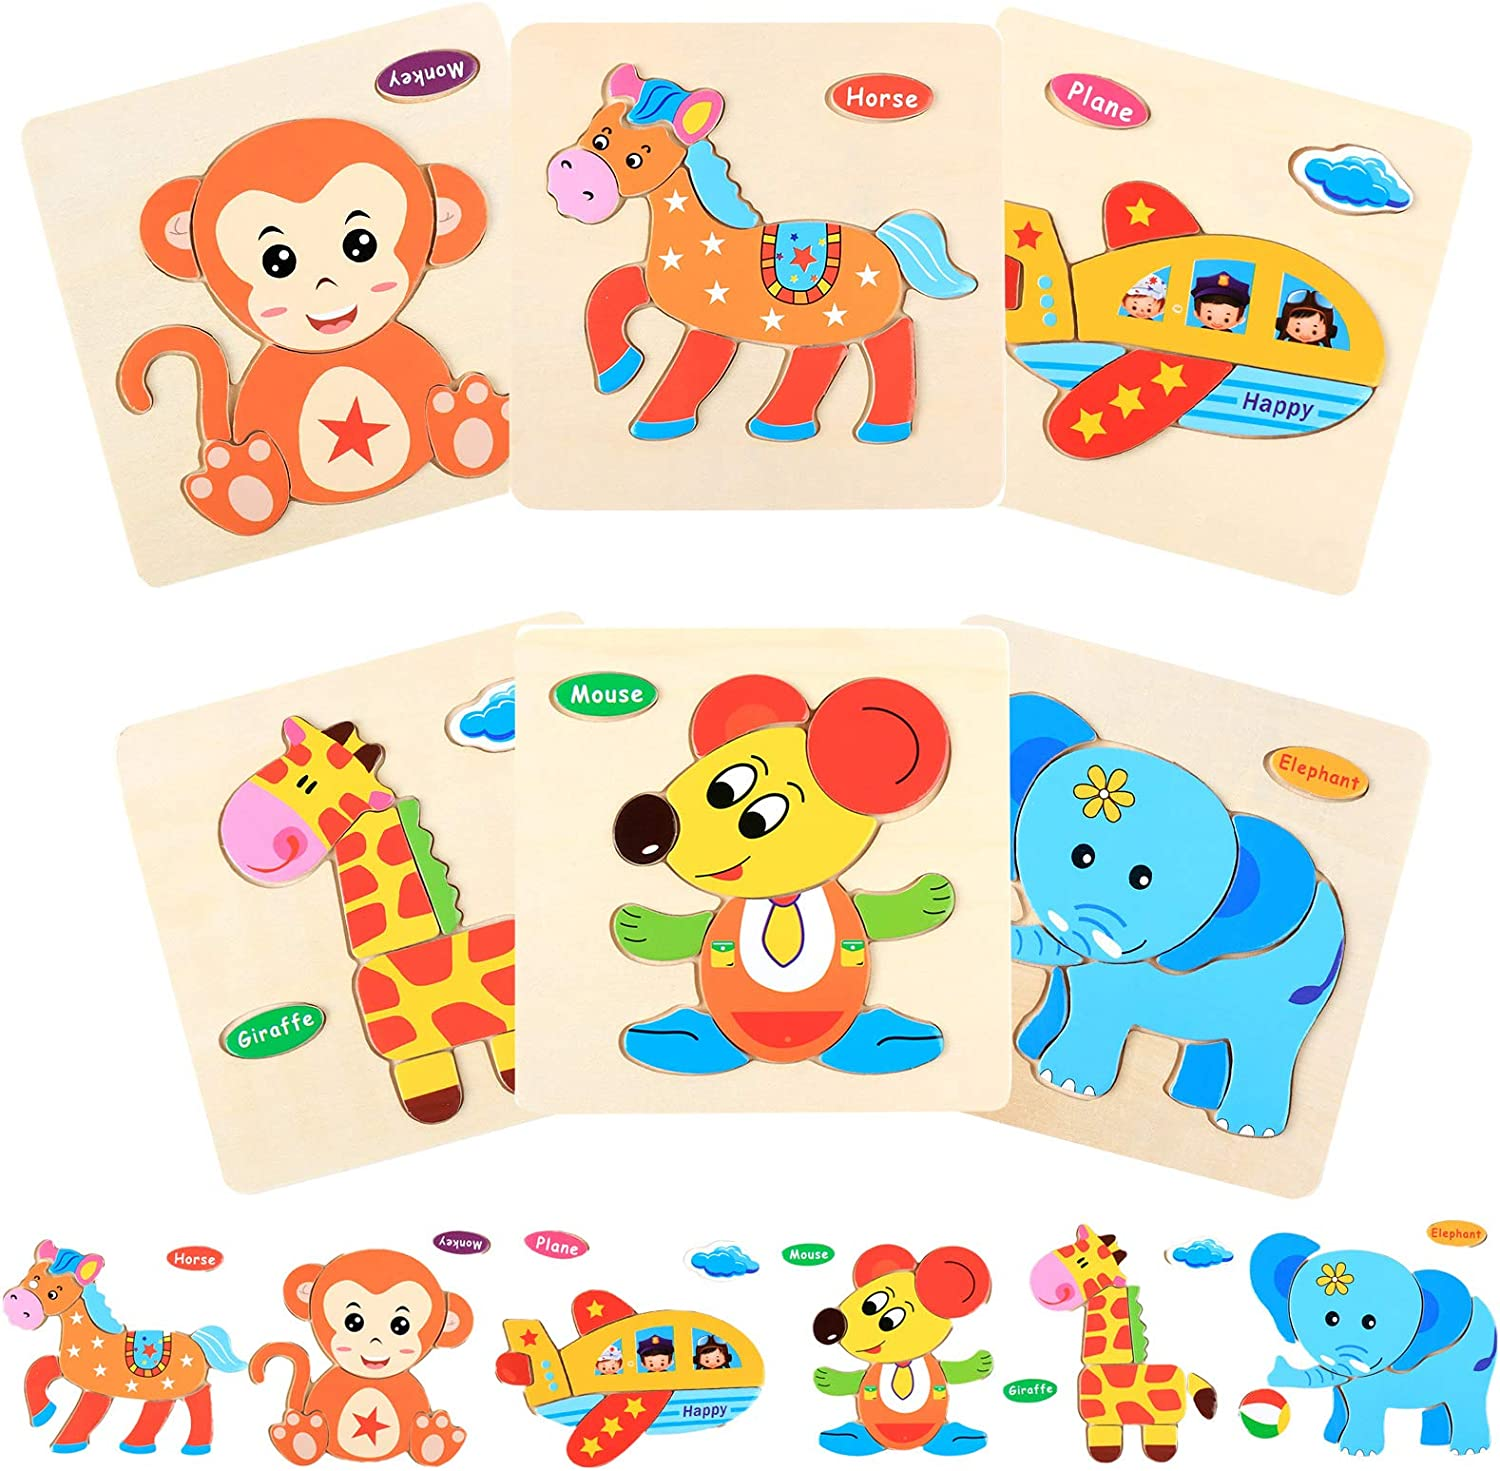 Animal Shape Jigsaw Puzzles Educational and Learning Set,Bright Vibrant Color Montessori Toy for Infant,Children Sensory Toy 6 Pack Wooden Toddler Puzzles Gift Toys for 1-3 Years Old Boys and Girls